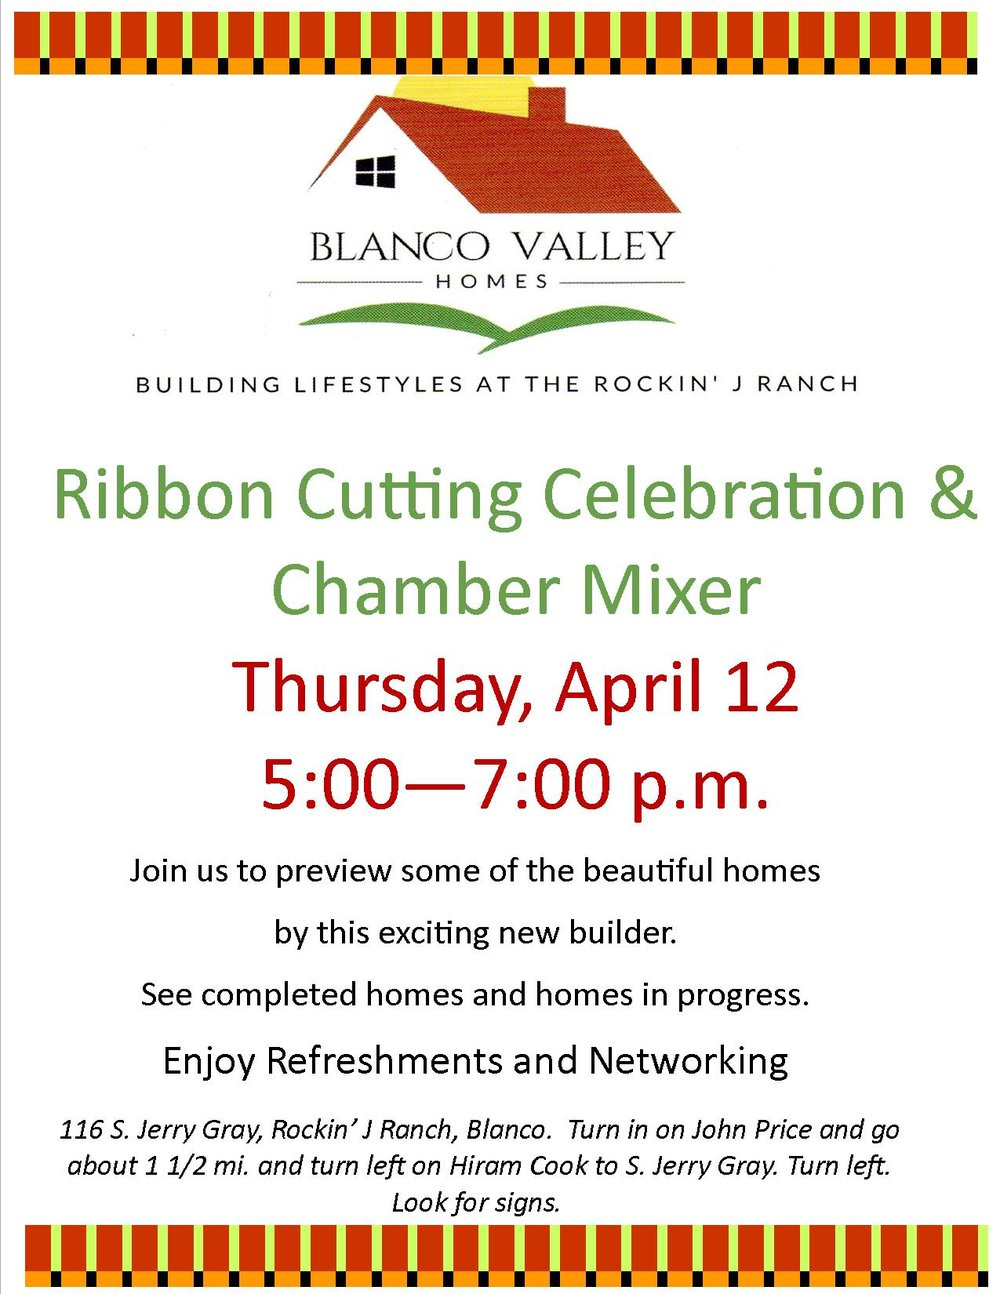 BlancoValleyHomesRibbonCutting Flyer.jpg